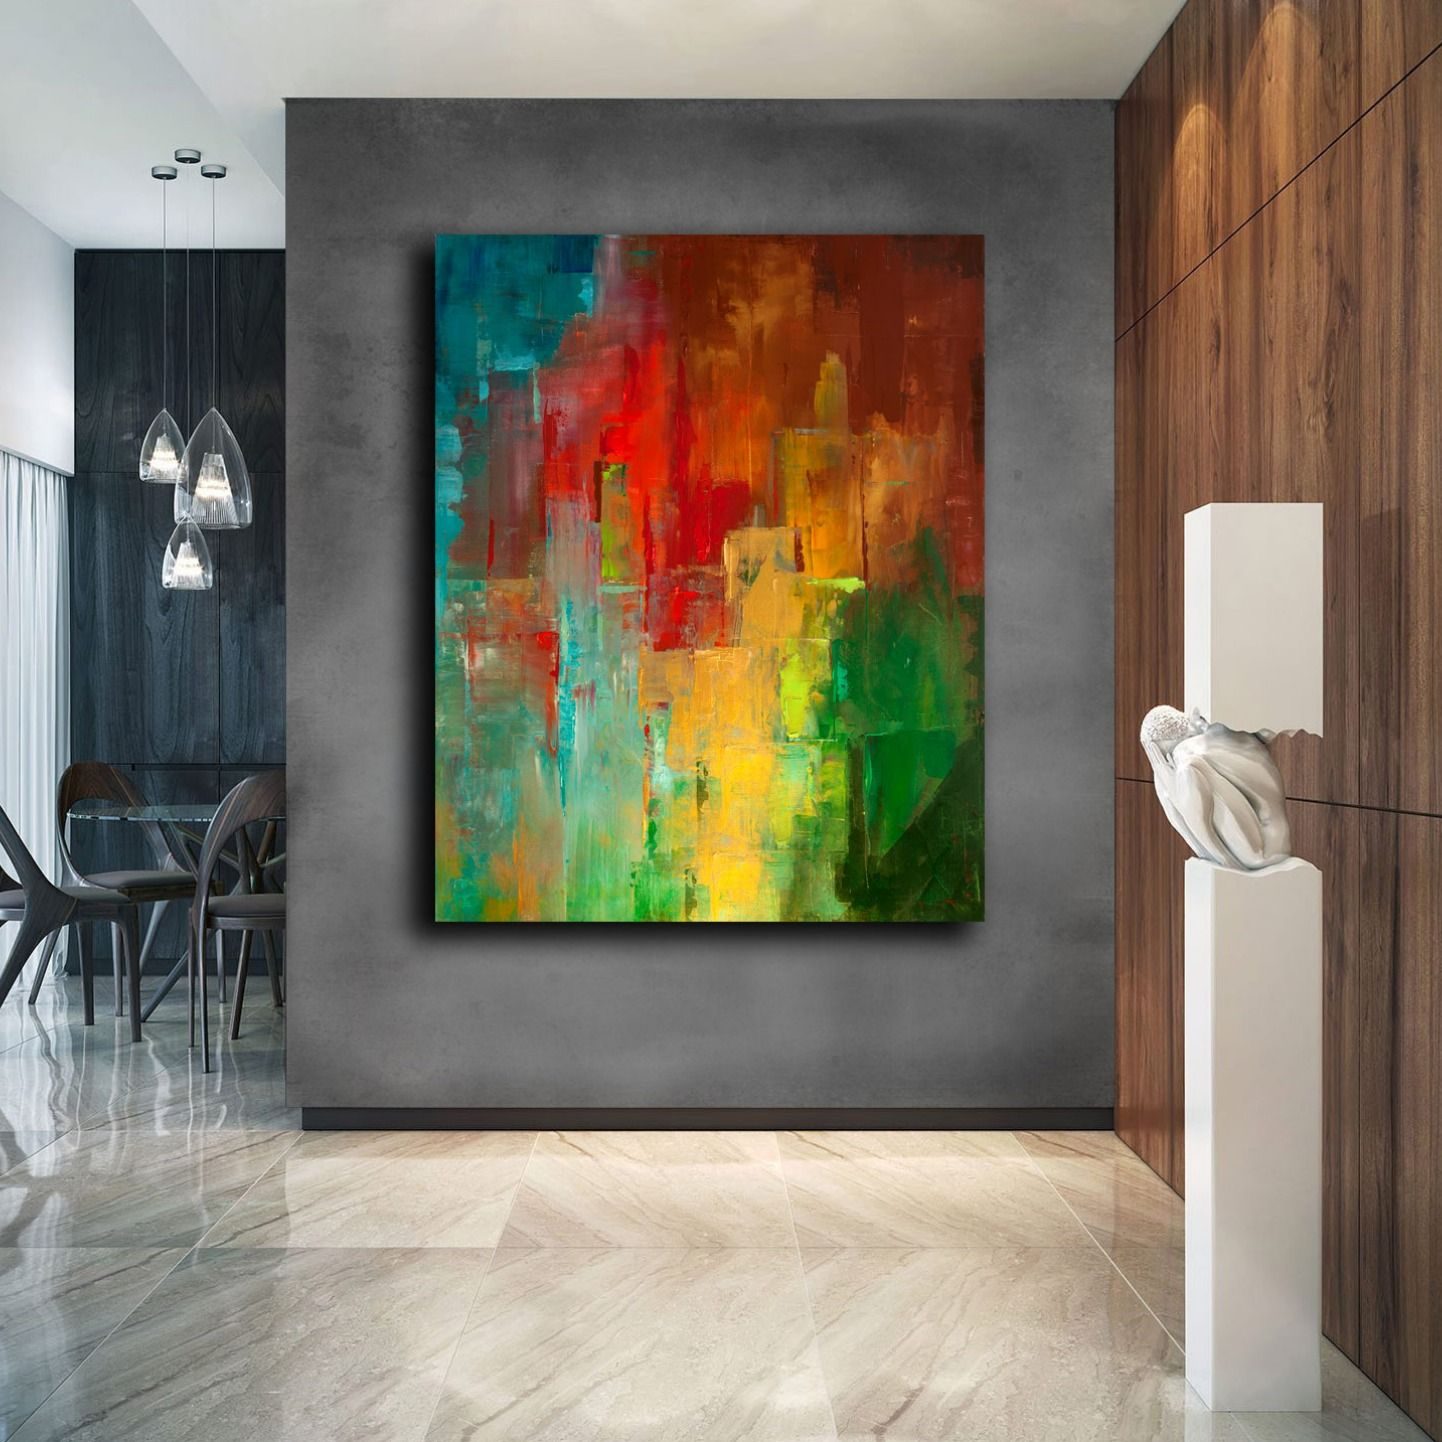 Contemporary Art Original Painting Abstract Colourful Abstract Wall Art Large Painting Canv Colorful Abstract Painting Abstract Painting Abstract Art Painting